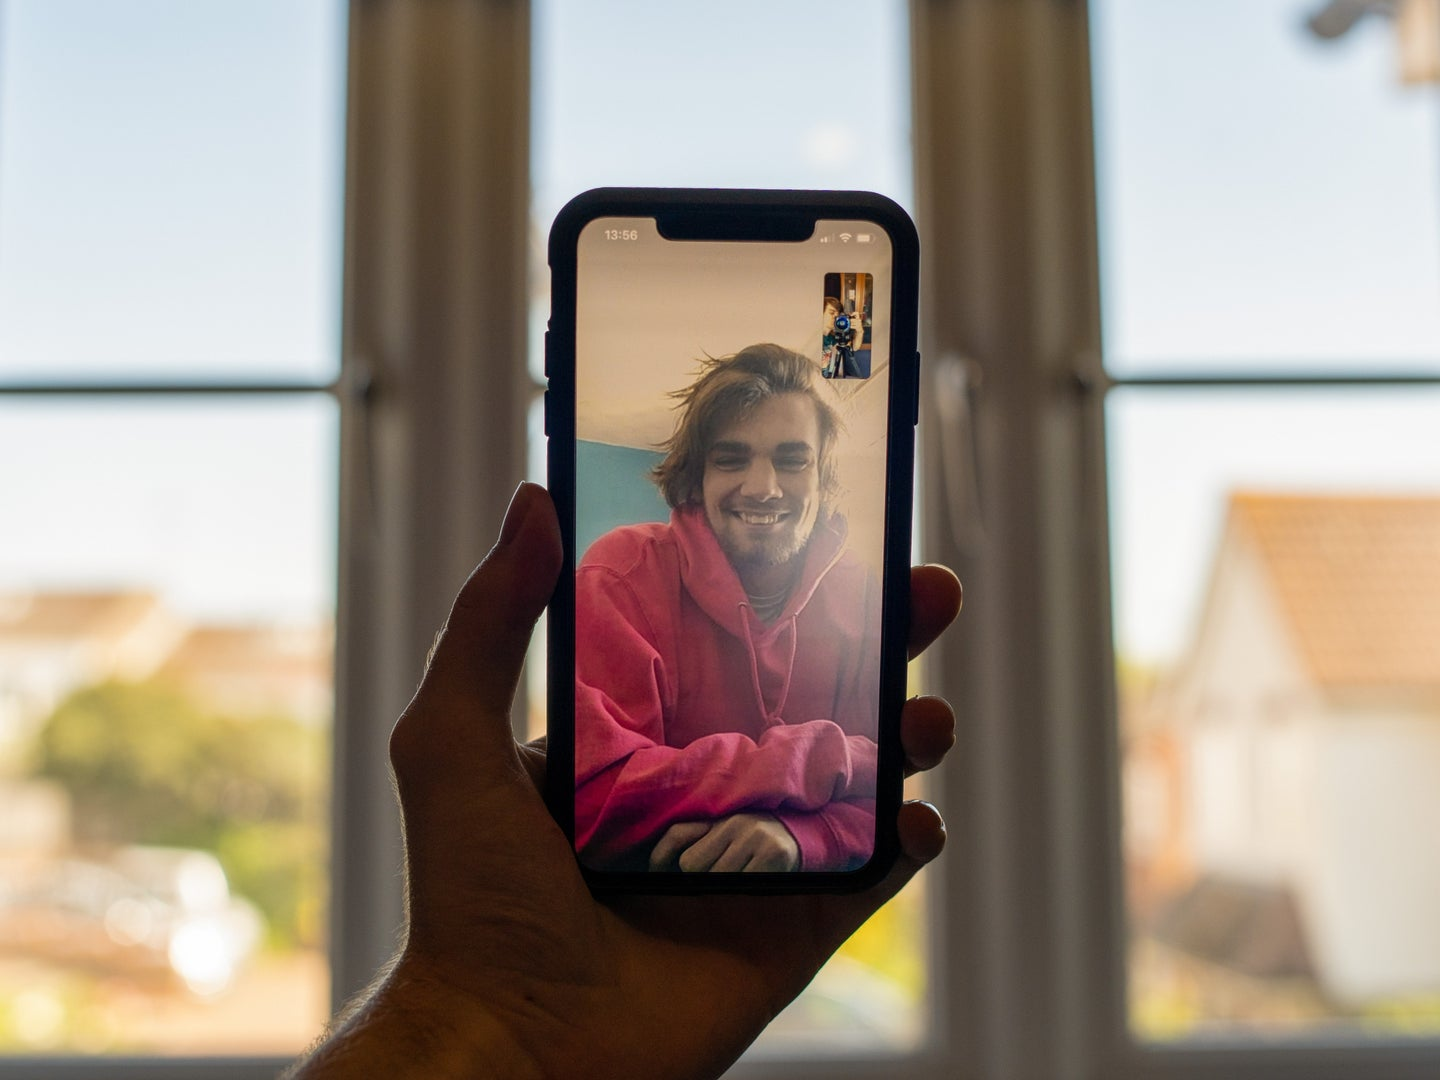 A person holding an iPhone in front of a window while having a FaceTime call with someone in a red sweatshirt.